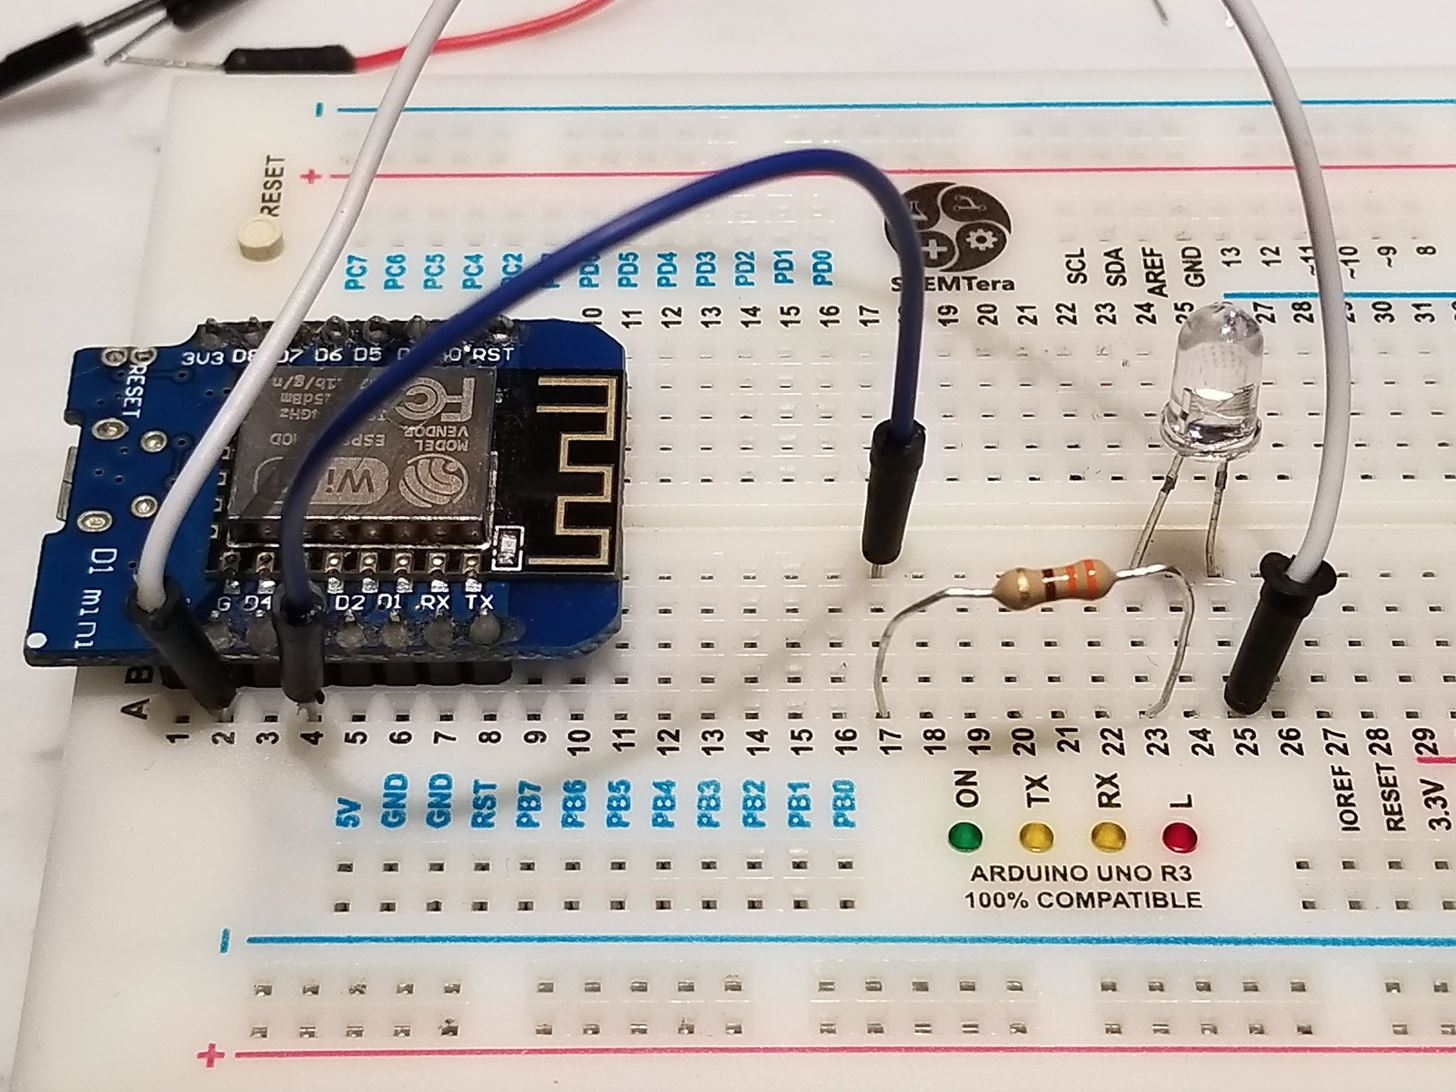 A Hacker's Guide to Programming Microcontrollers